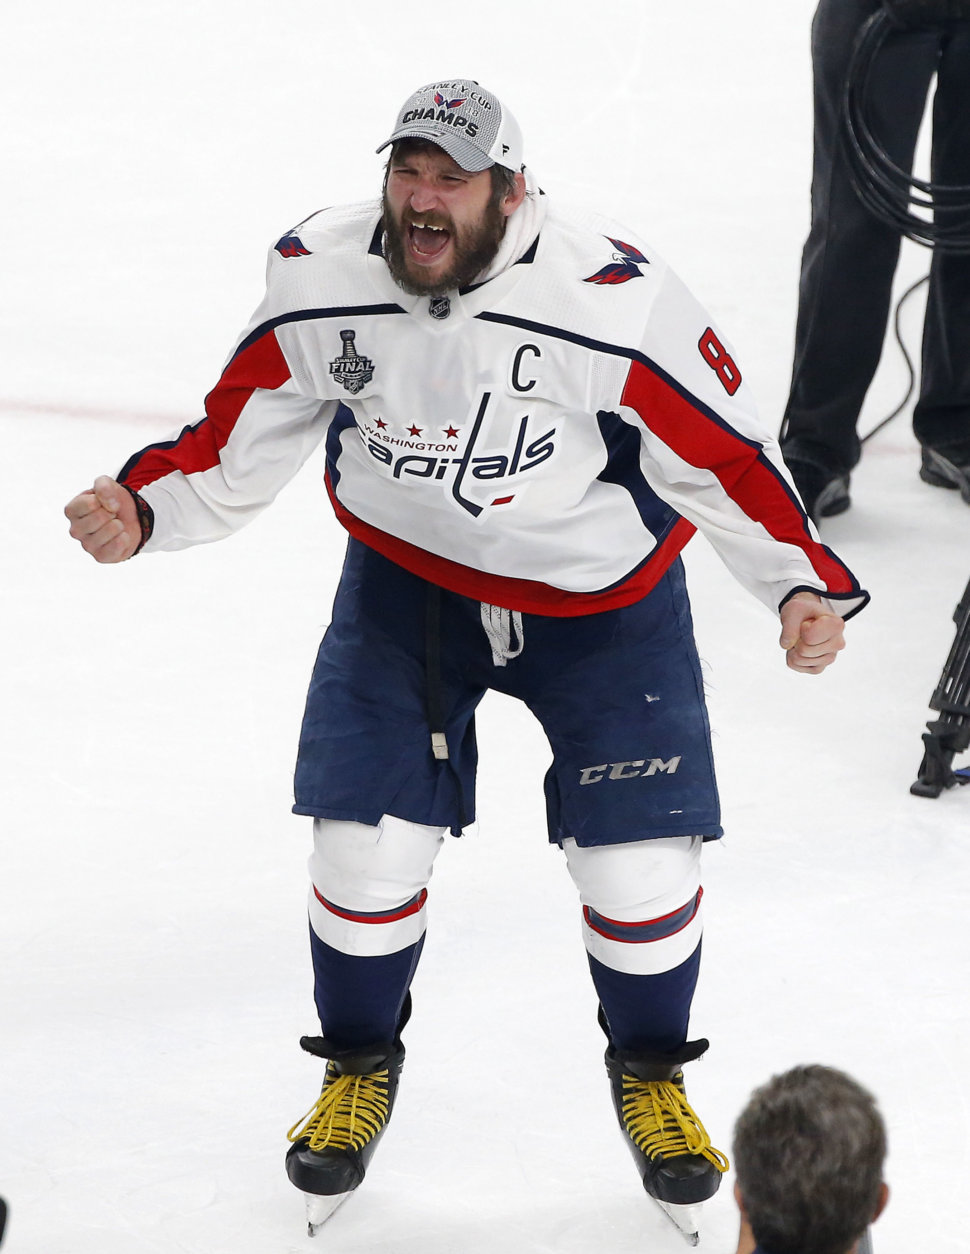 Washington Capitals' Alex Ovechkin celebrates on the ice after the Capitals defeated the Vegas Golden Knights in Game 5 of the NHL hockey Stanley Cup Finals Thursday, June 7, 2018, in Las Vegas. (AP Photo/Ross D. Franklin)